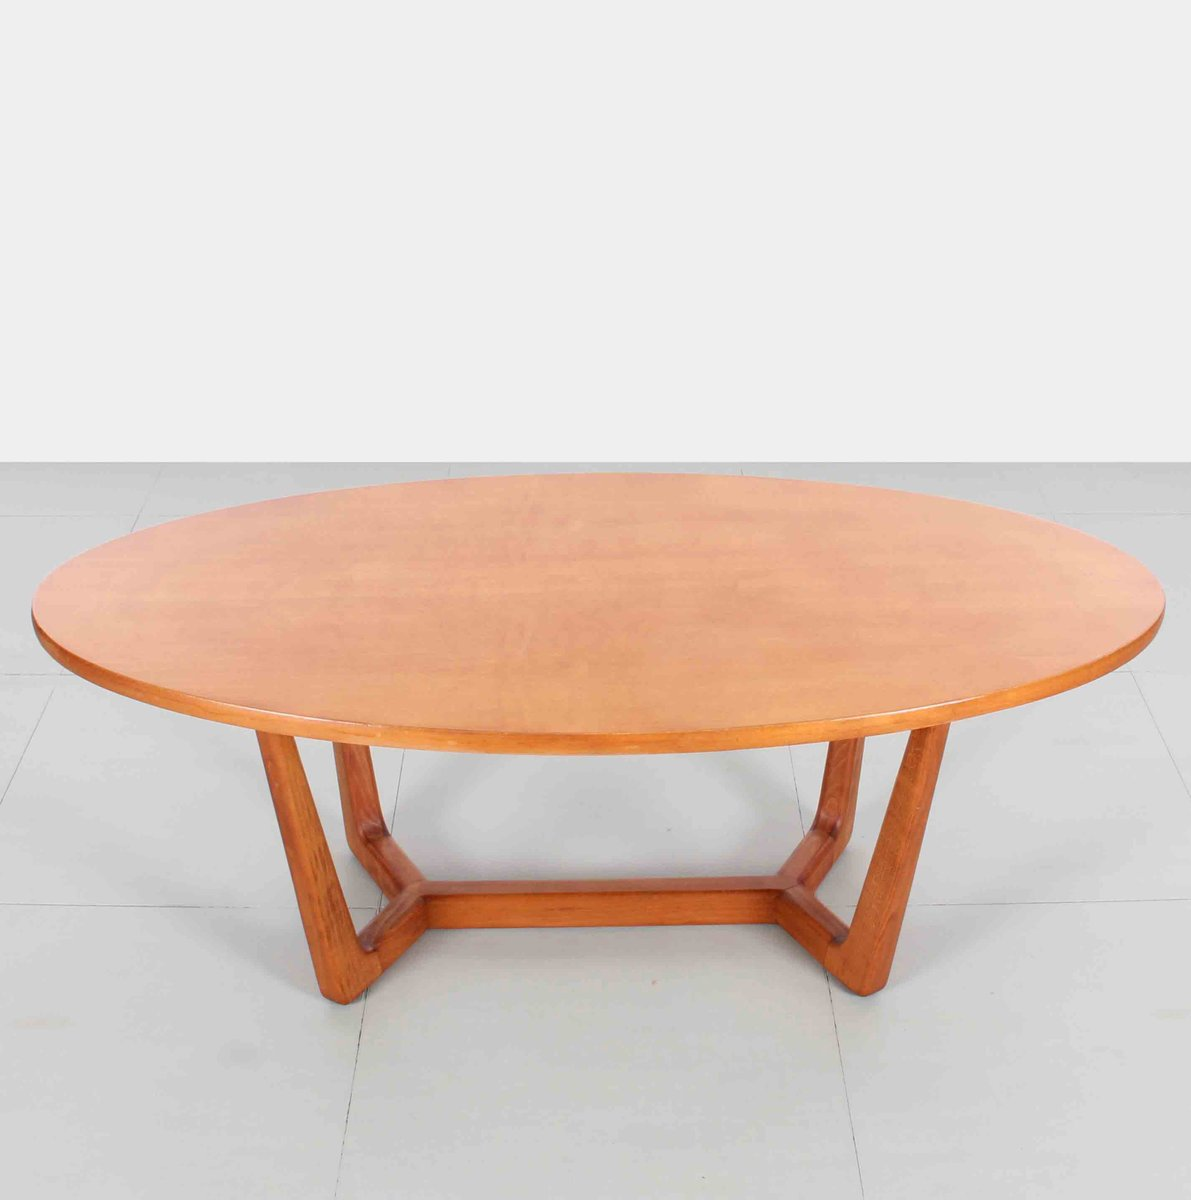 Oval Espresso Coffee Table: Czech Oval Coffee Table, 1960s For Sale At Pamono